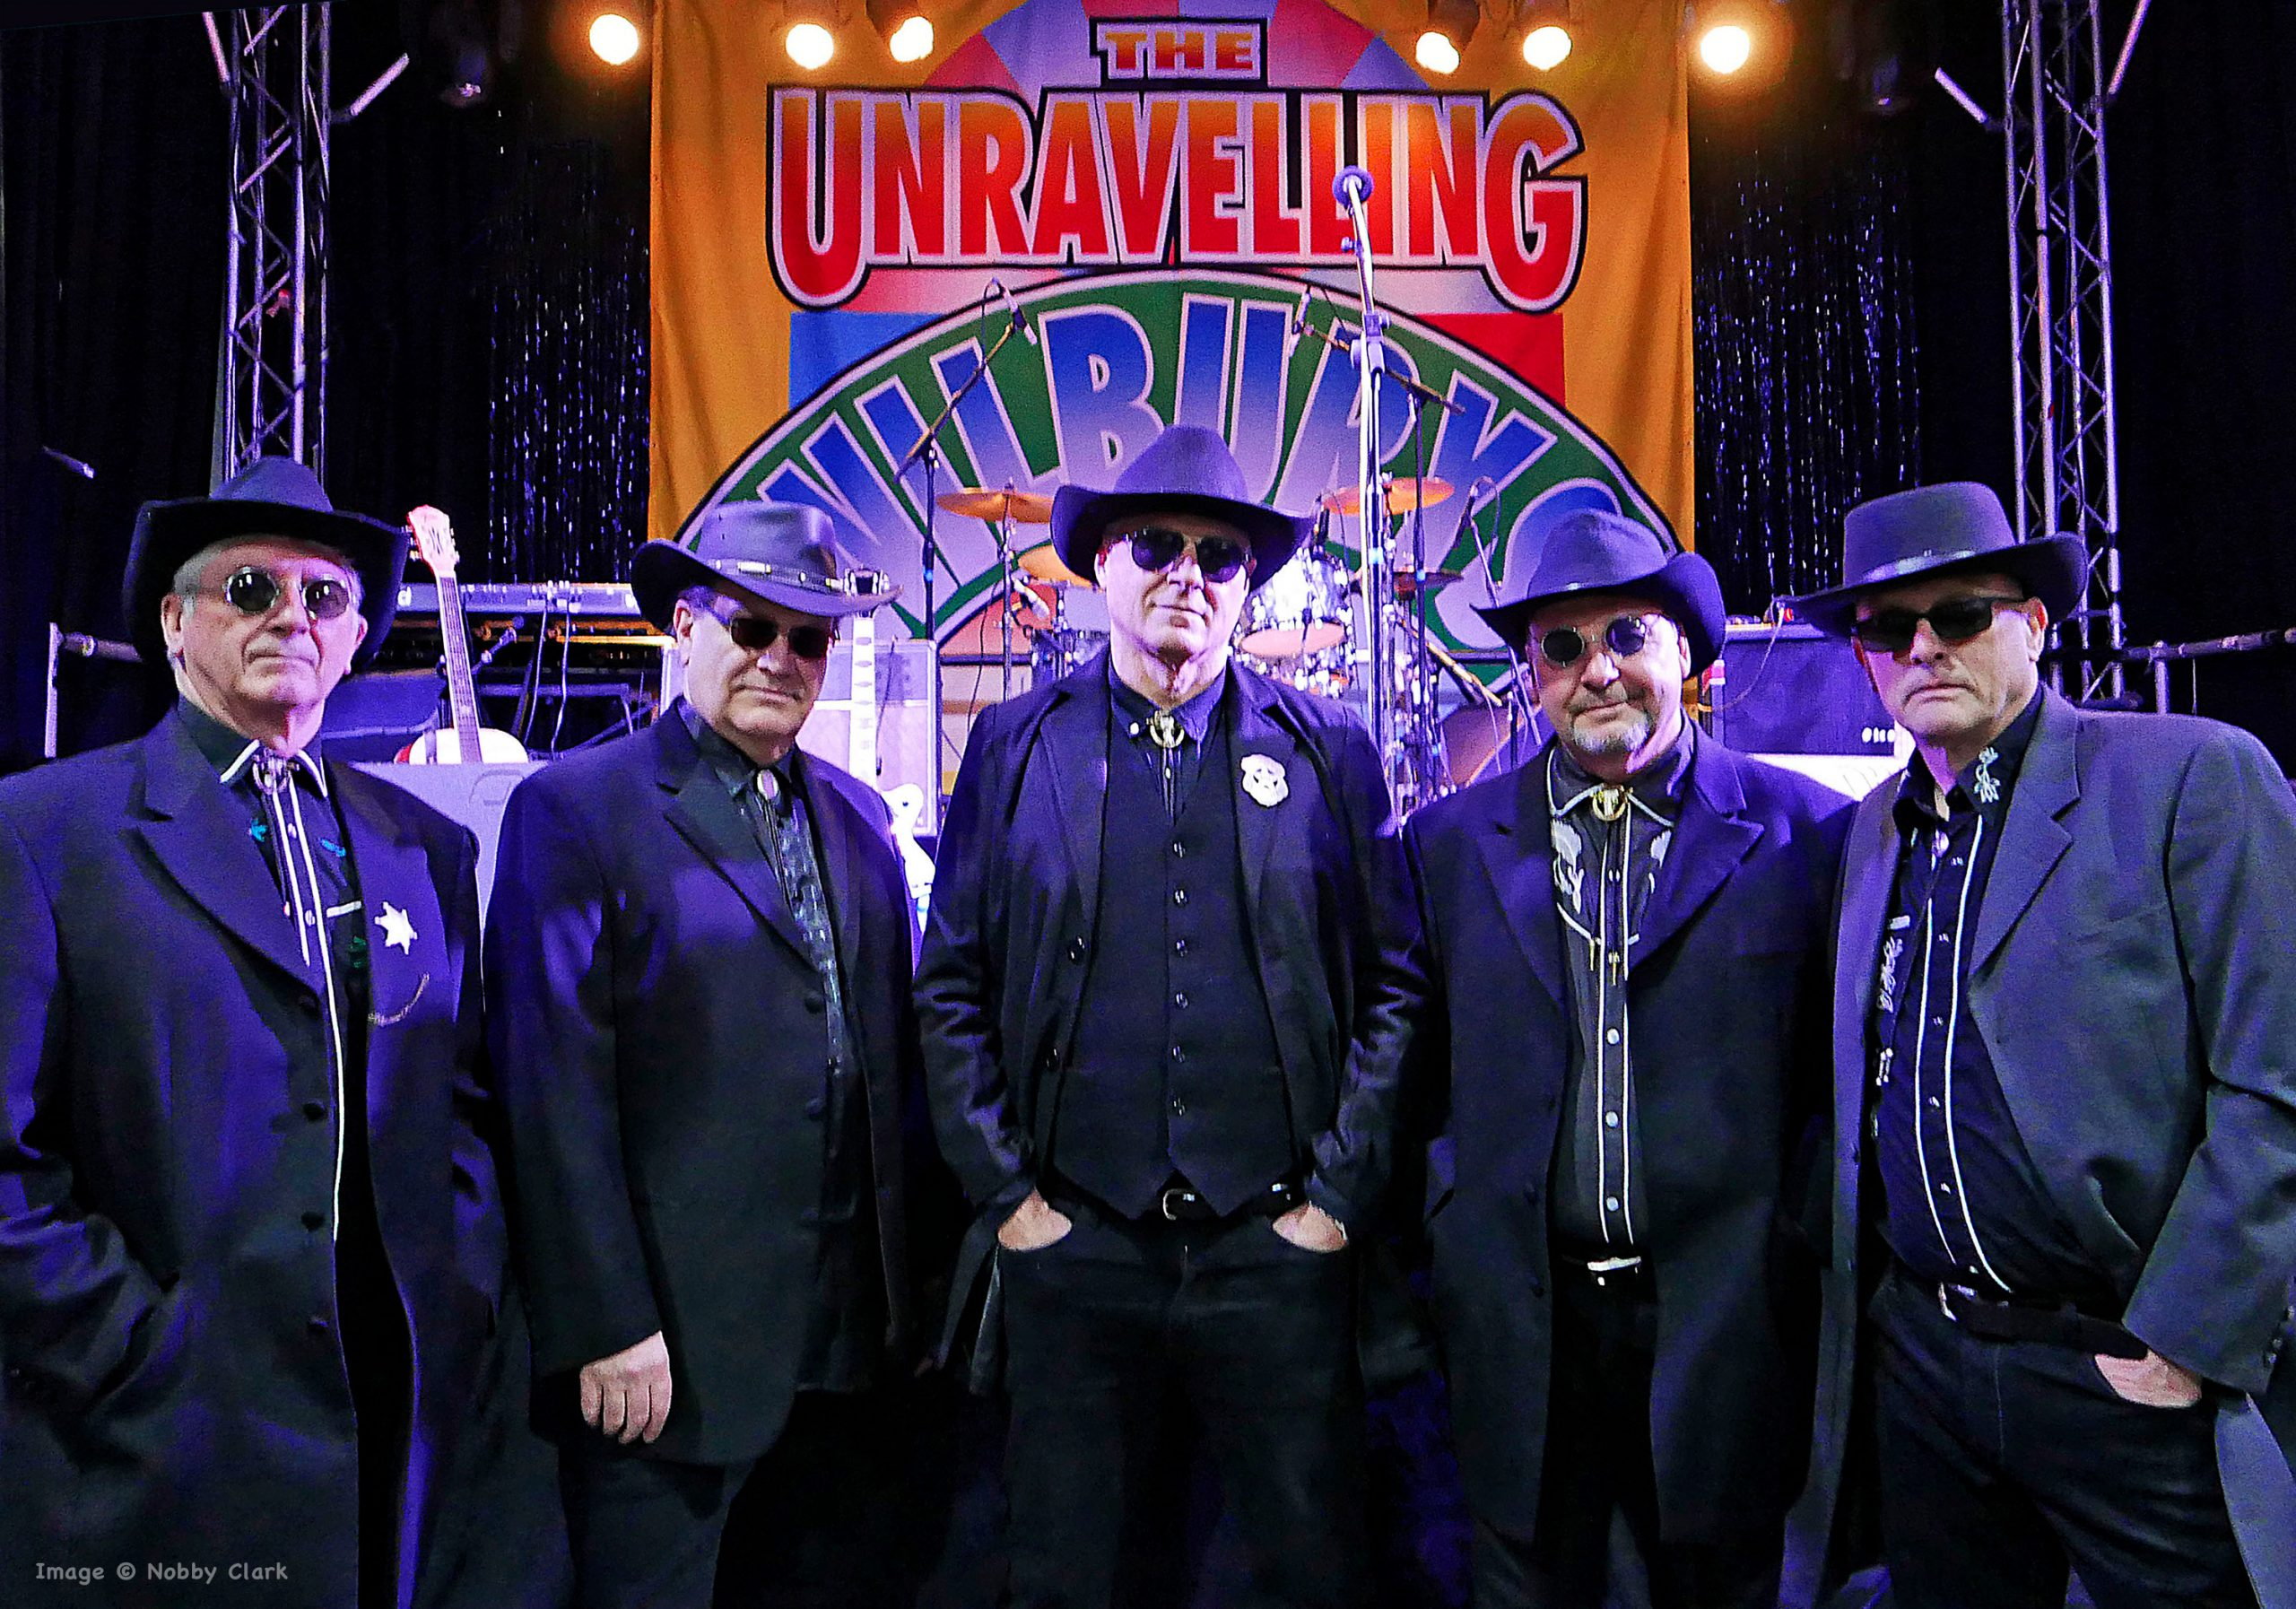 The Unravelling Wilburys